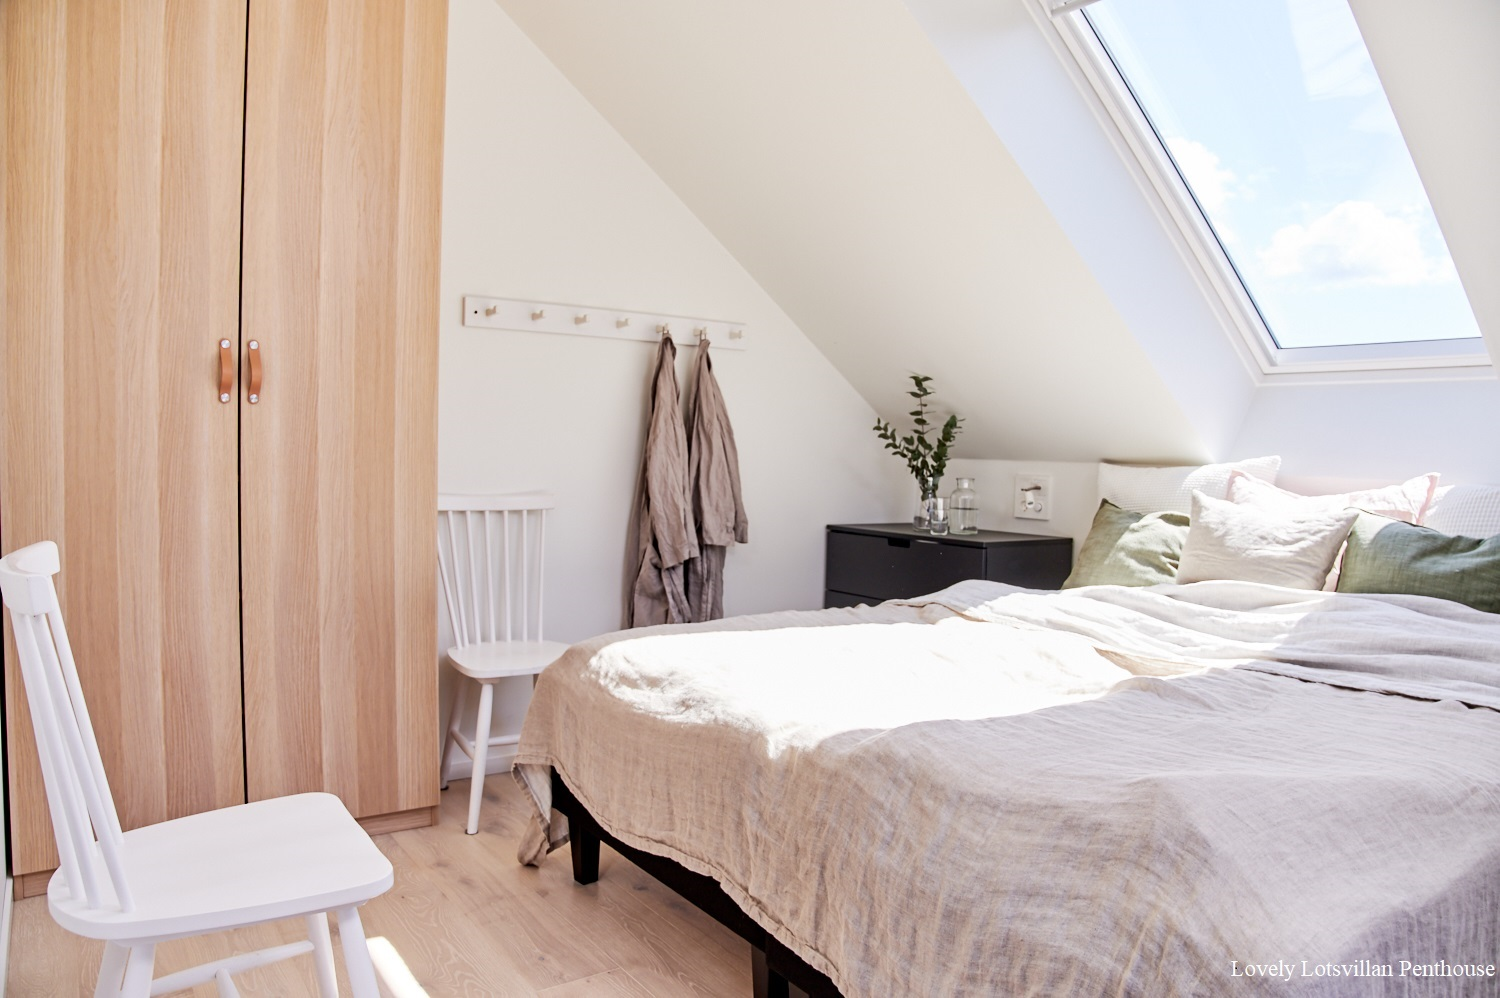 Lovely Lotsvillan Penthouse-one of the bedrooms